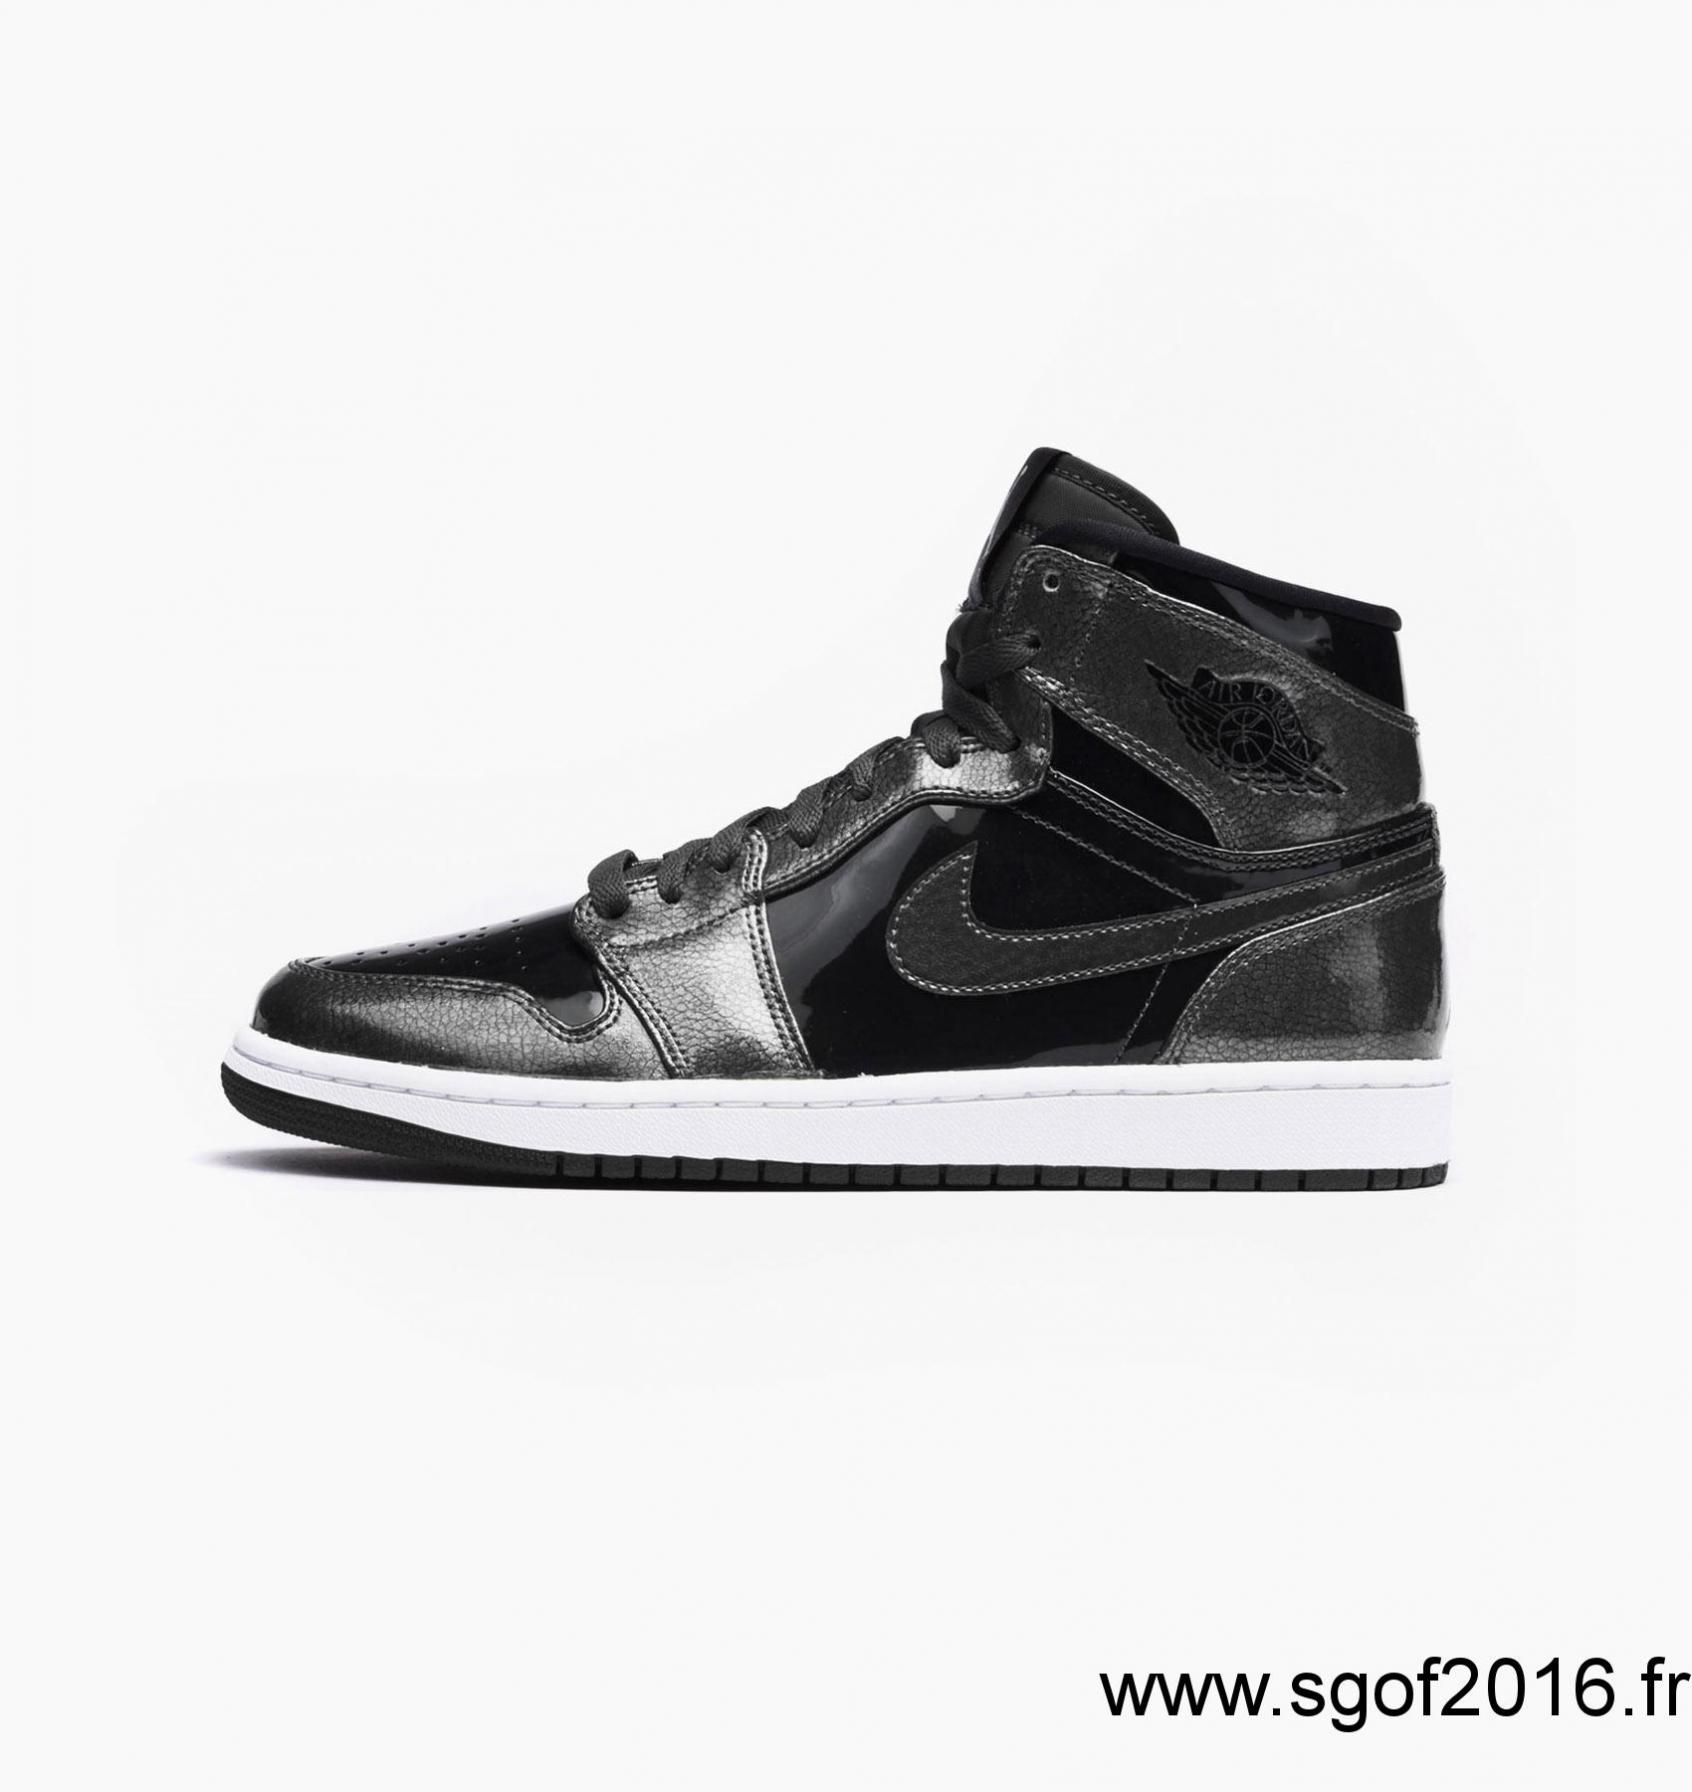 Jordan 1 enfants, France Jordan Enfants Air Jordan 1 Retro High Bg Chaussures/Sneakers Taille  28,29